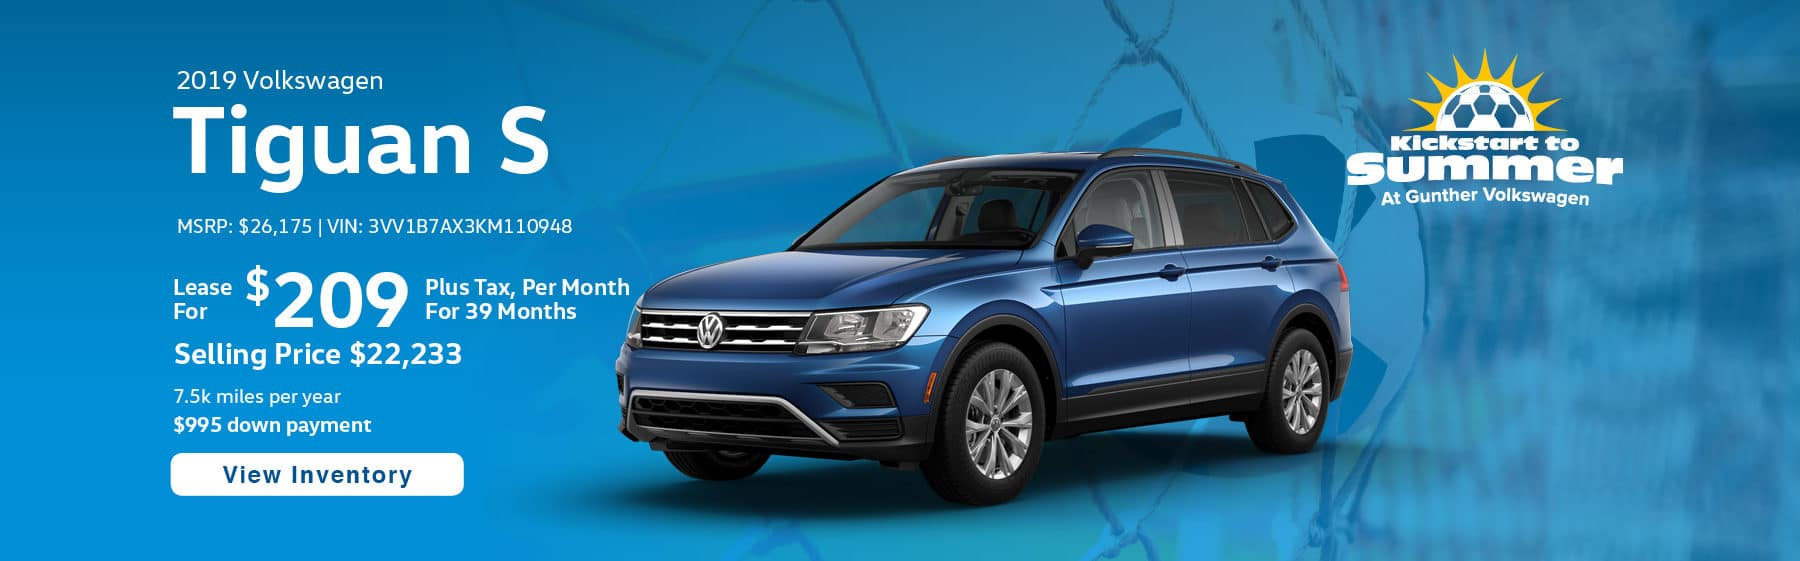 Lease the 2019 Tiguan S for $209 per month, plus tax for 39 months.